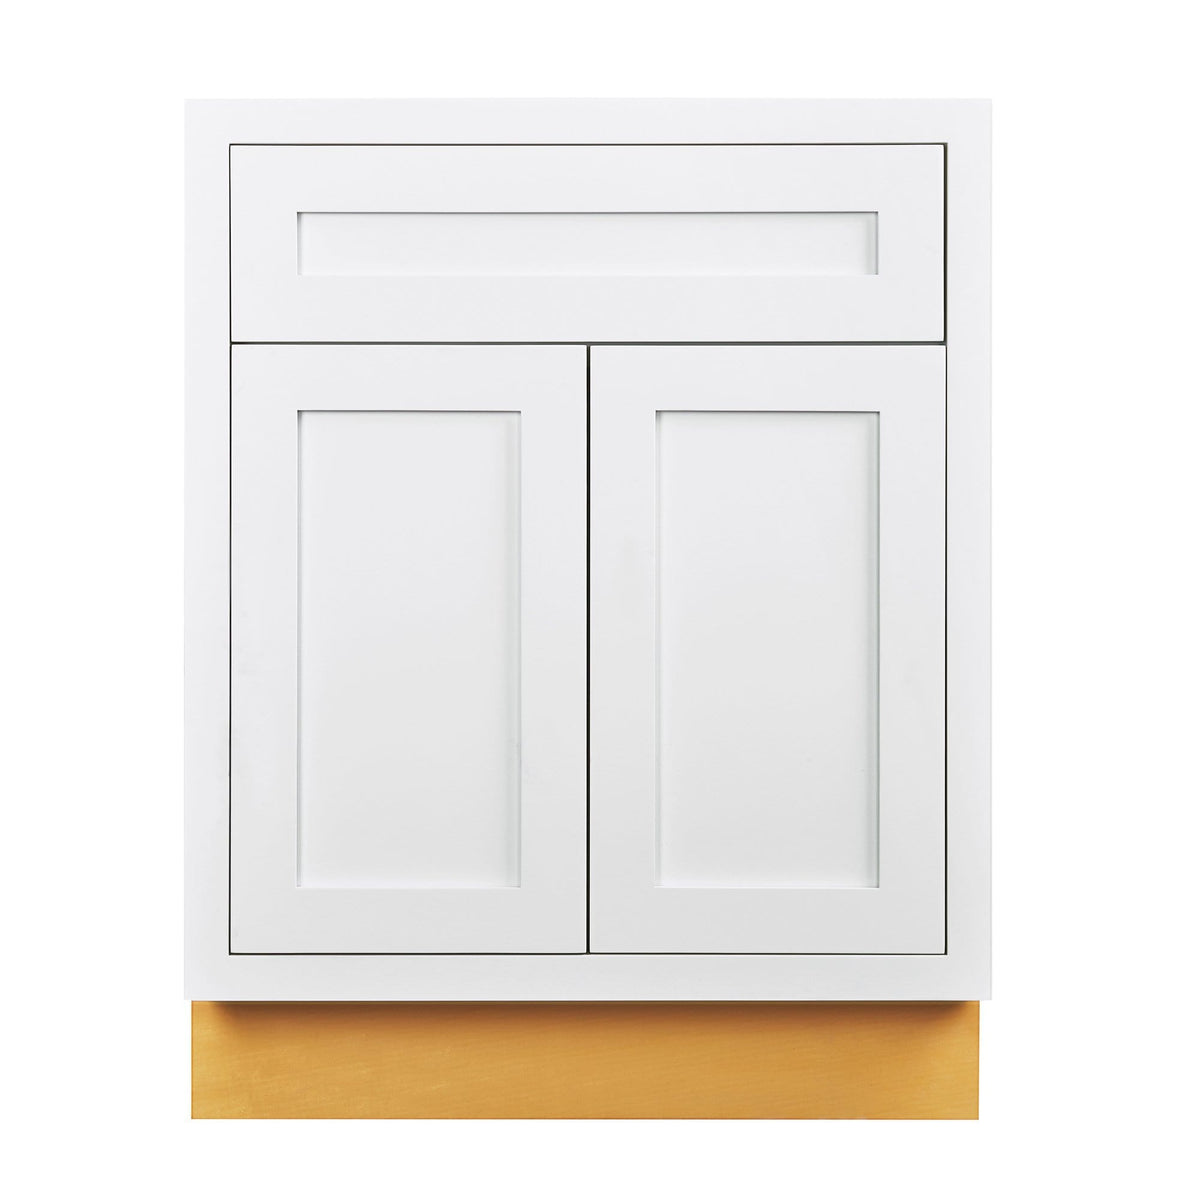 "Base Cabinet Snow White Inset Shaker Base Cabinet - Double Door 24""-27"" Wide D1B24 Inset Kitchen Cabinets"